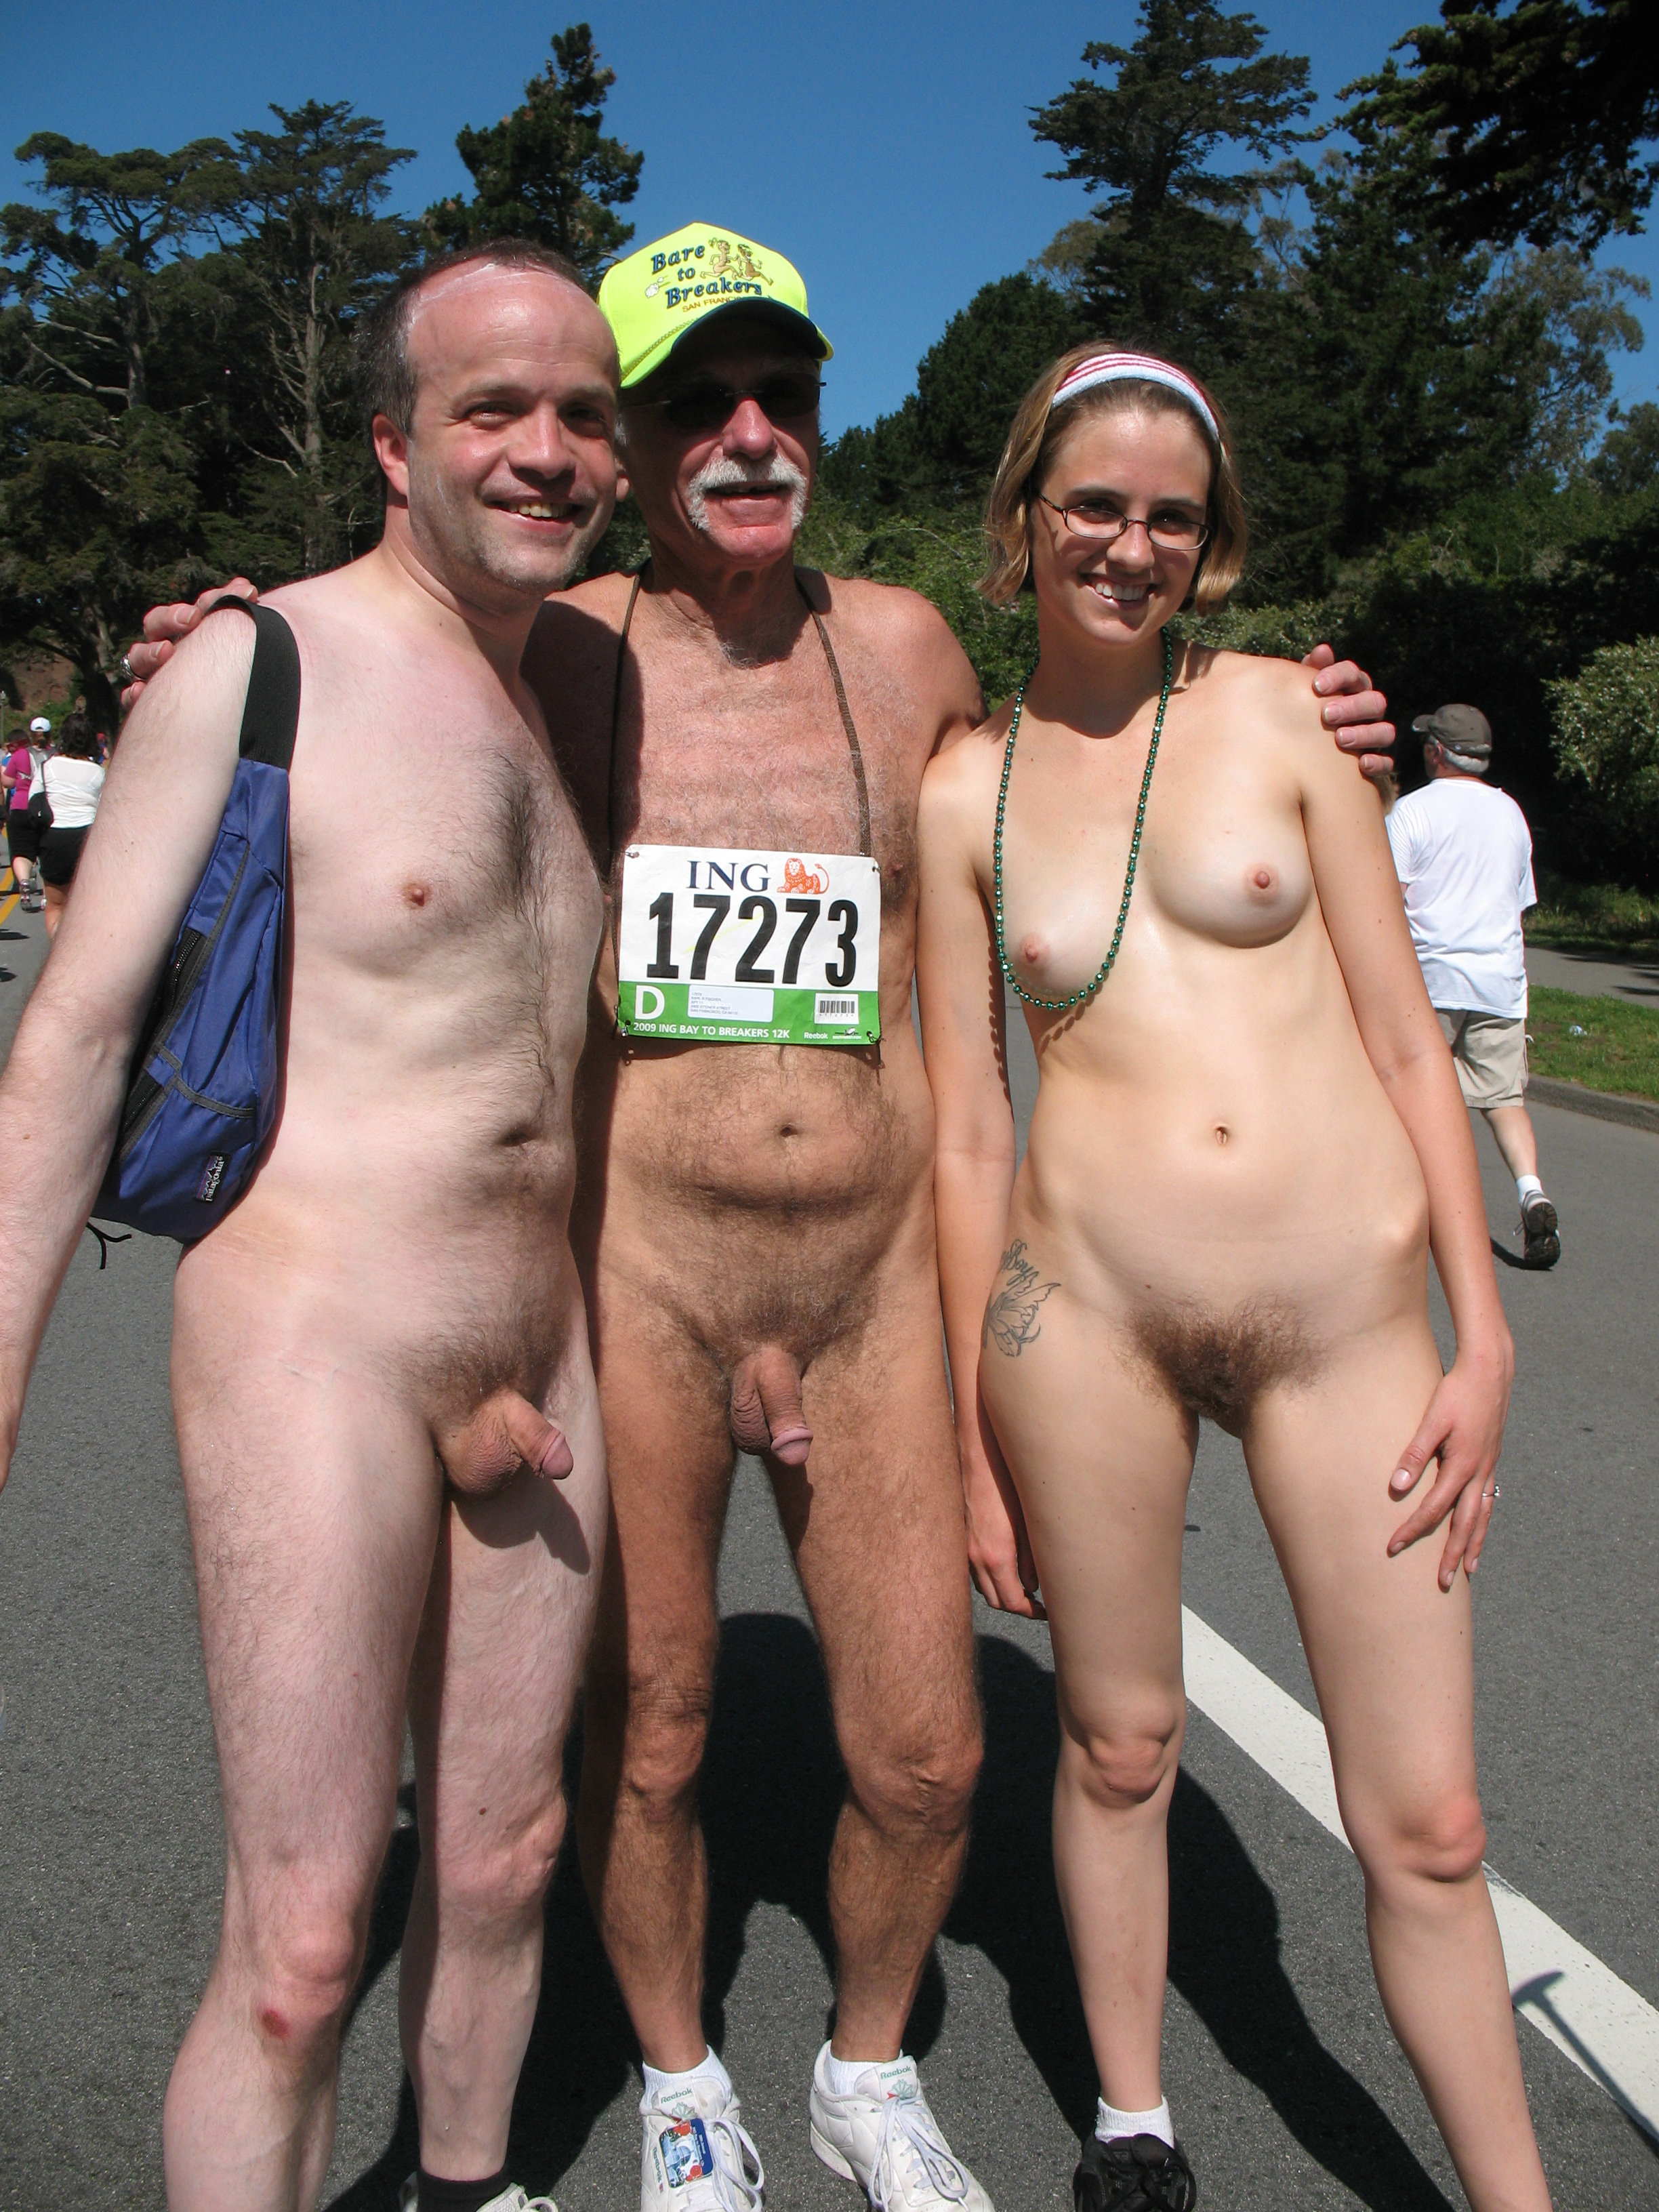 nude in public - motherless